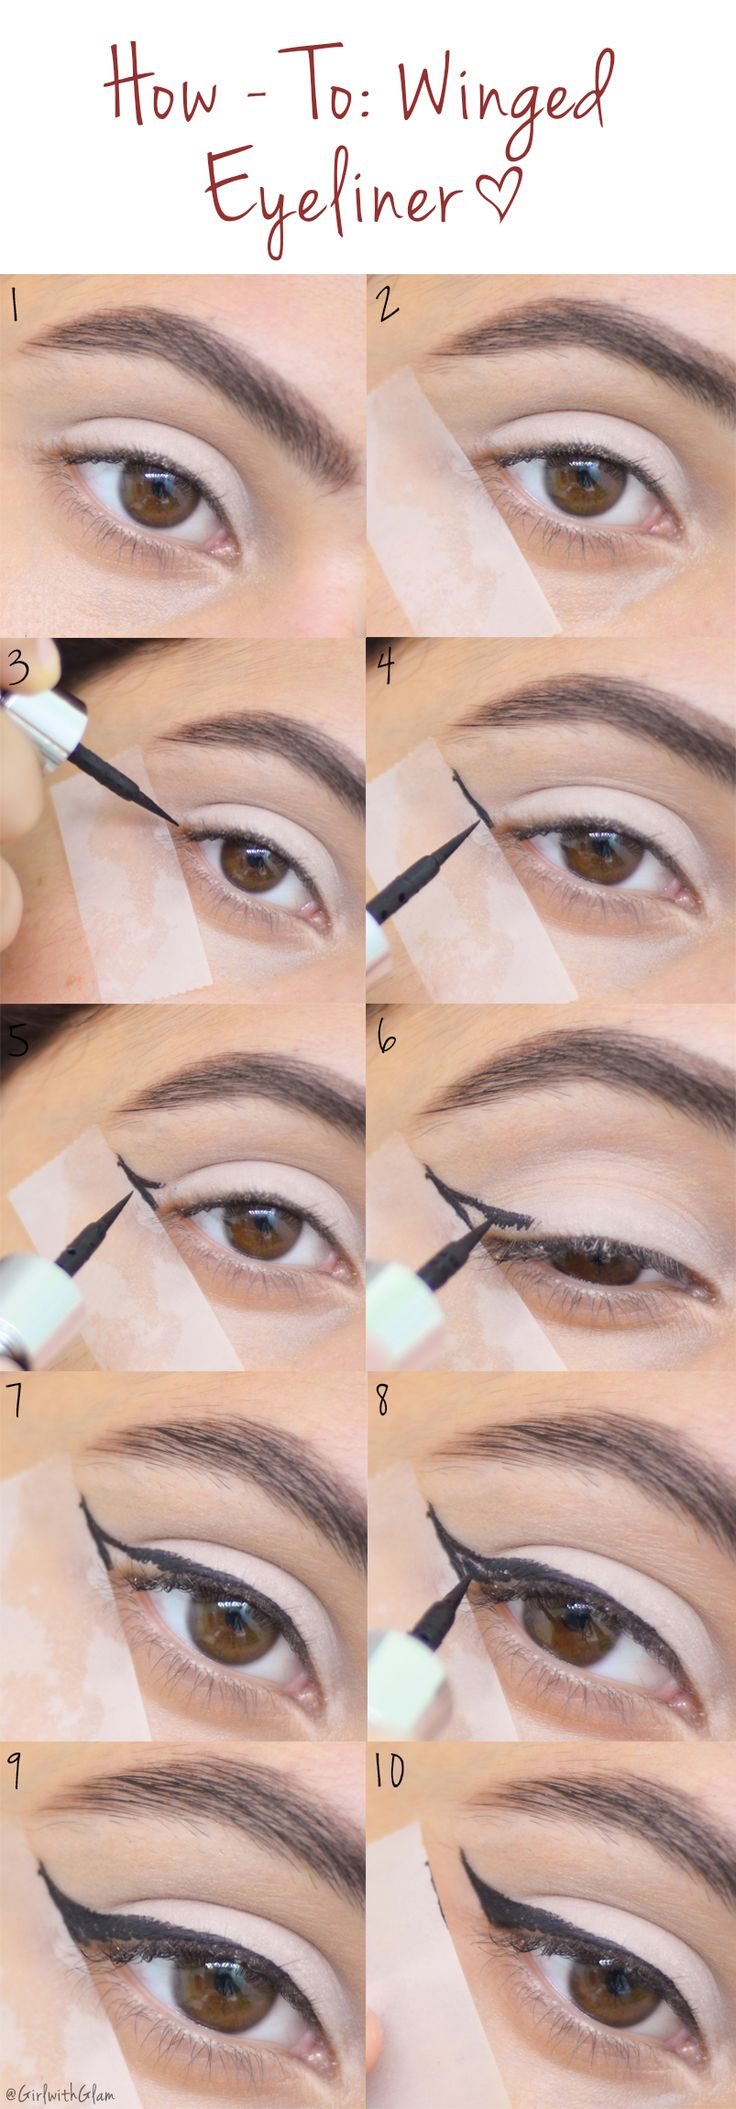 How To: Winged Eyeliner [Tape Method]  #eyeliner #howto #tutorial #makeuptutorial #easyeyeliner #wingedliner #makeup #cosmetics